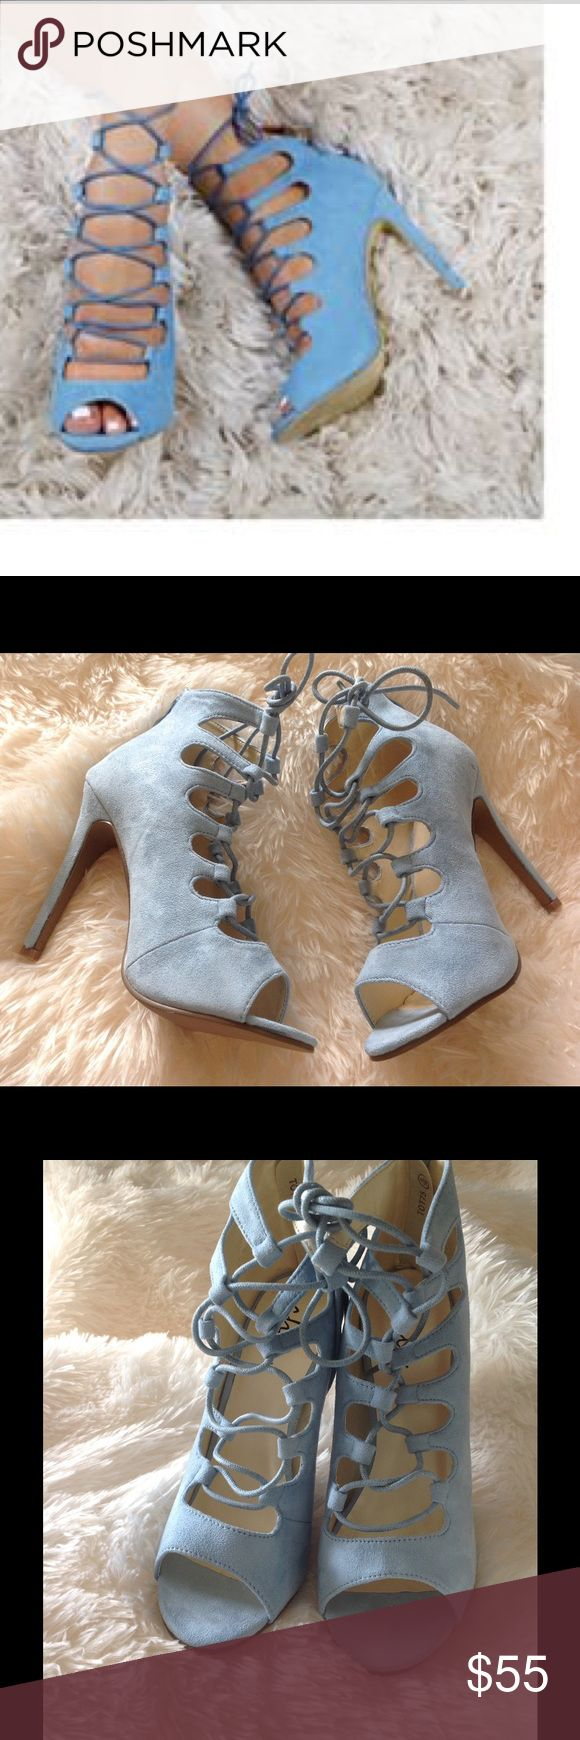 "Faux suede sky blue lace up heels BRAND NEW No Box From ENGLAND Brand new/no box Sky blue faux suede lace up heels. 4 "" heel. UK 5 US size 7. True to size. Similar to Zara, but Chic brand. Zara Shoes Heels"